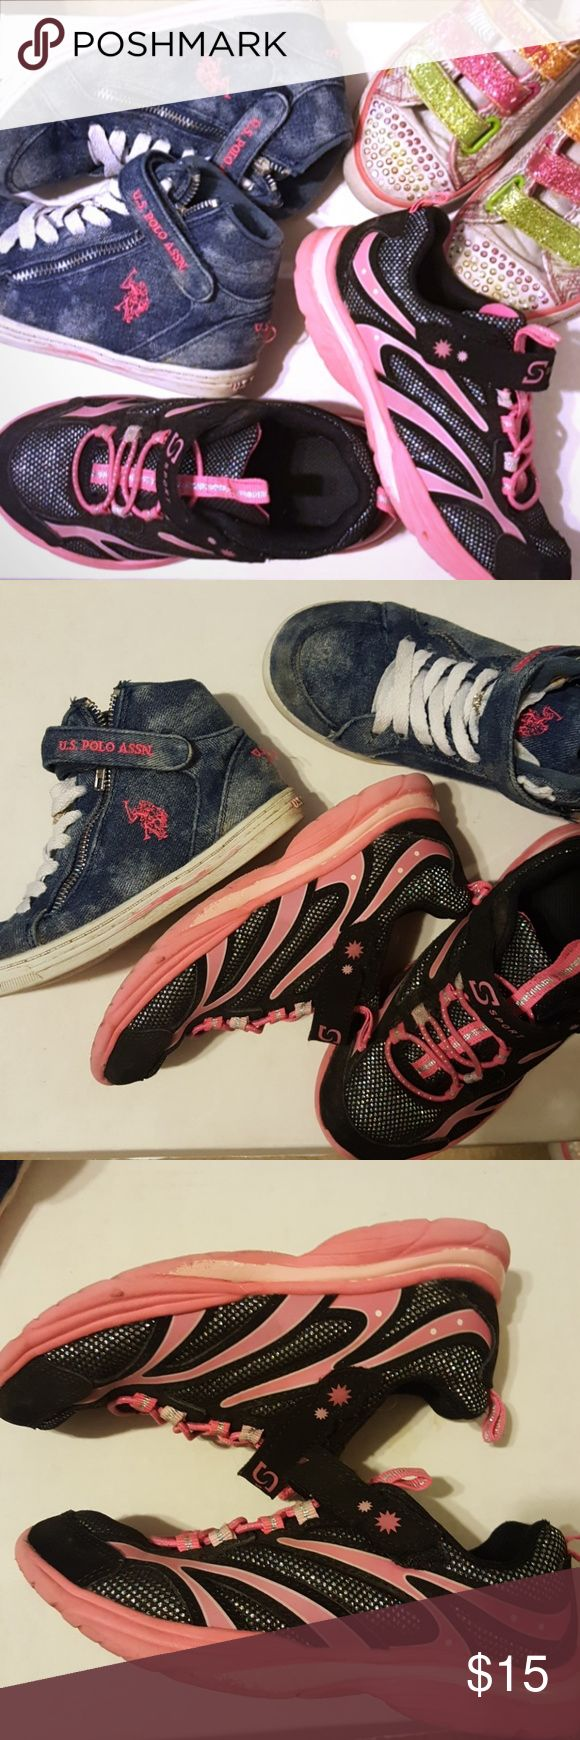 BUNDLE- GIRLS SNEAKERS SIZE 1 (FREE size 2) Bundle of 2 girls tennis shoes sneakers size 1 (Polo denim needs to wash, Black is clean)  ??FREE - skechers twinkle toes size 2 very worn but still good to play outside Skechers Shoes Sneakers